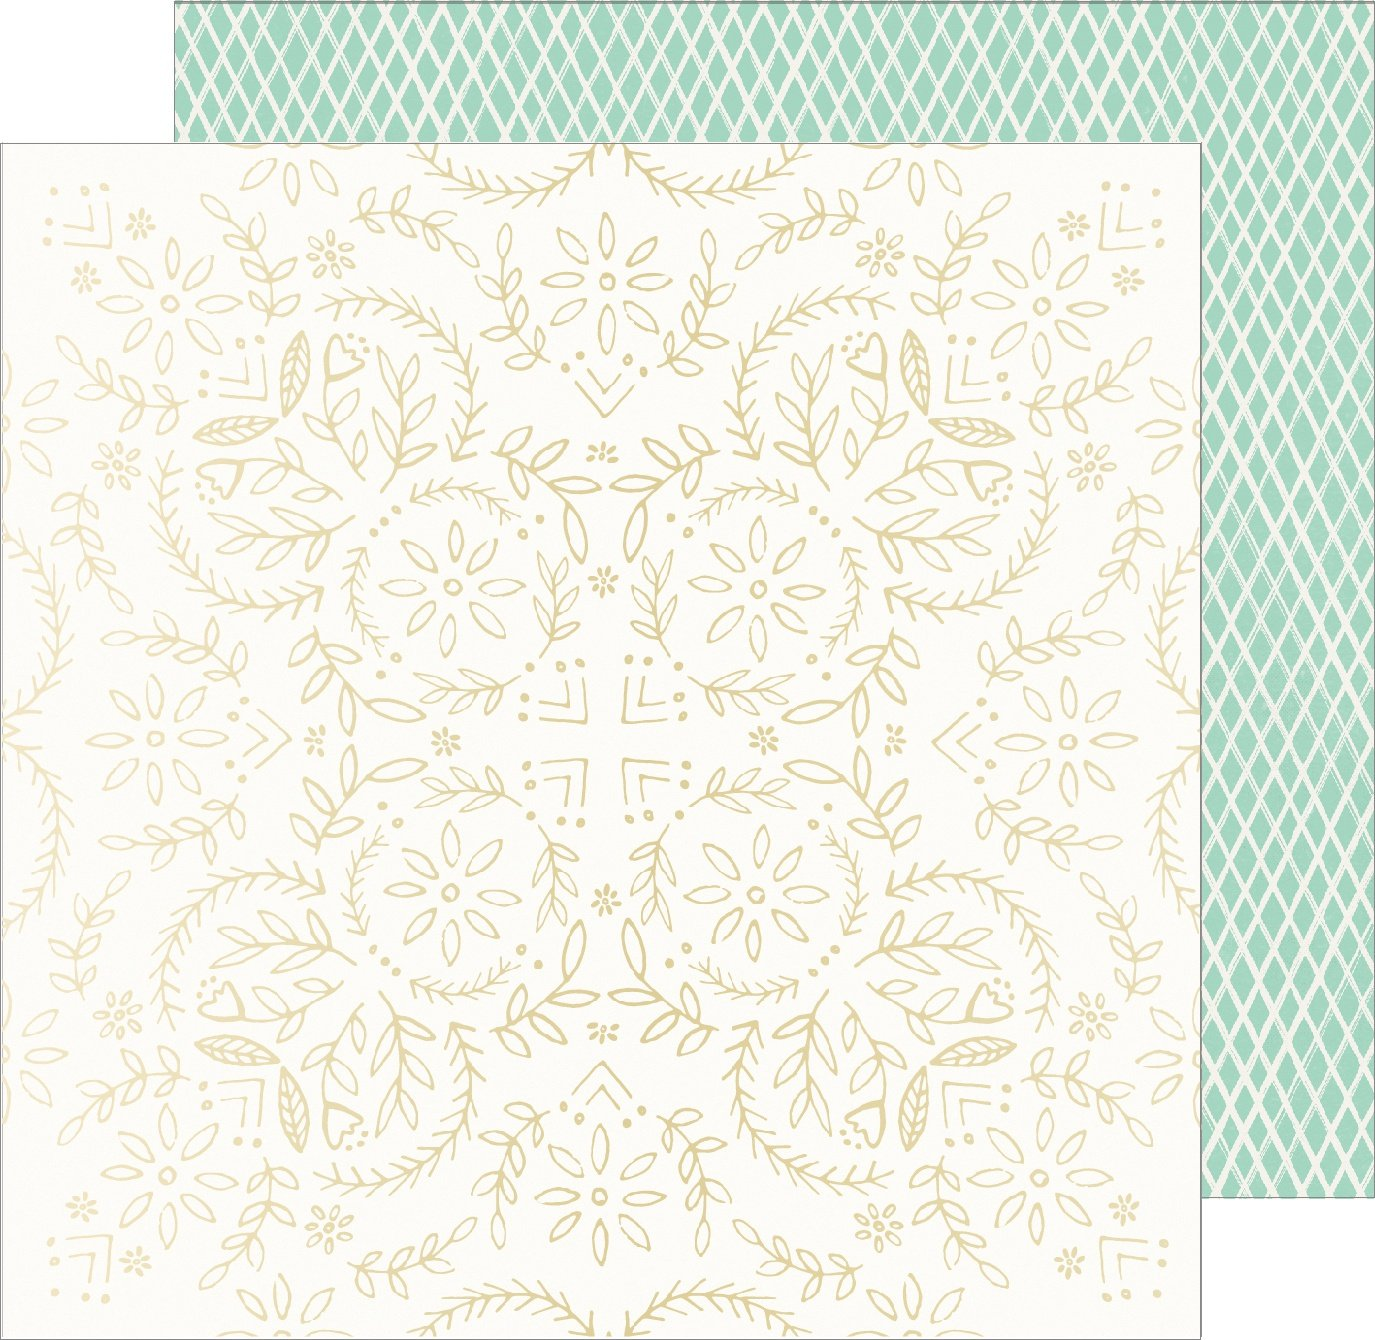 American Crafts Sunny days Foil on cardstock 12x12